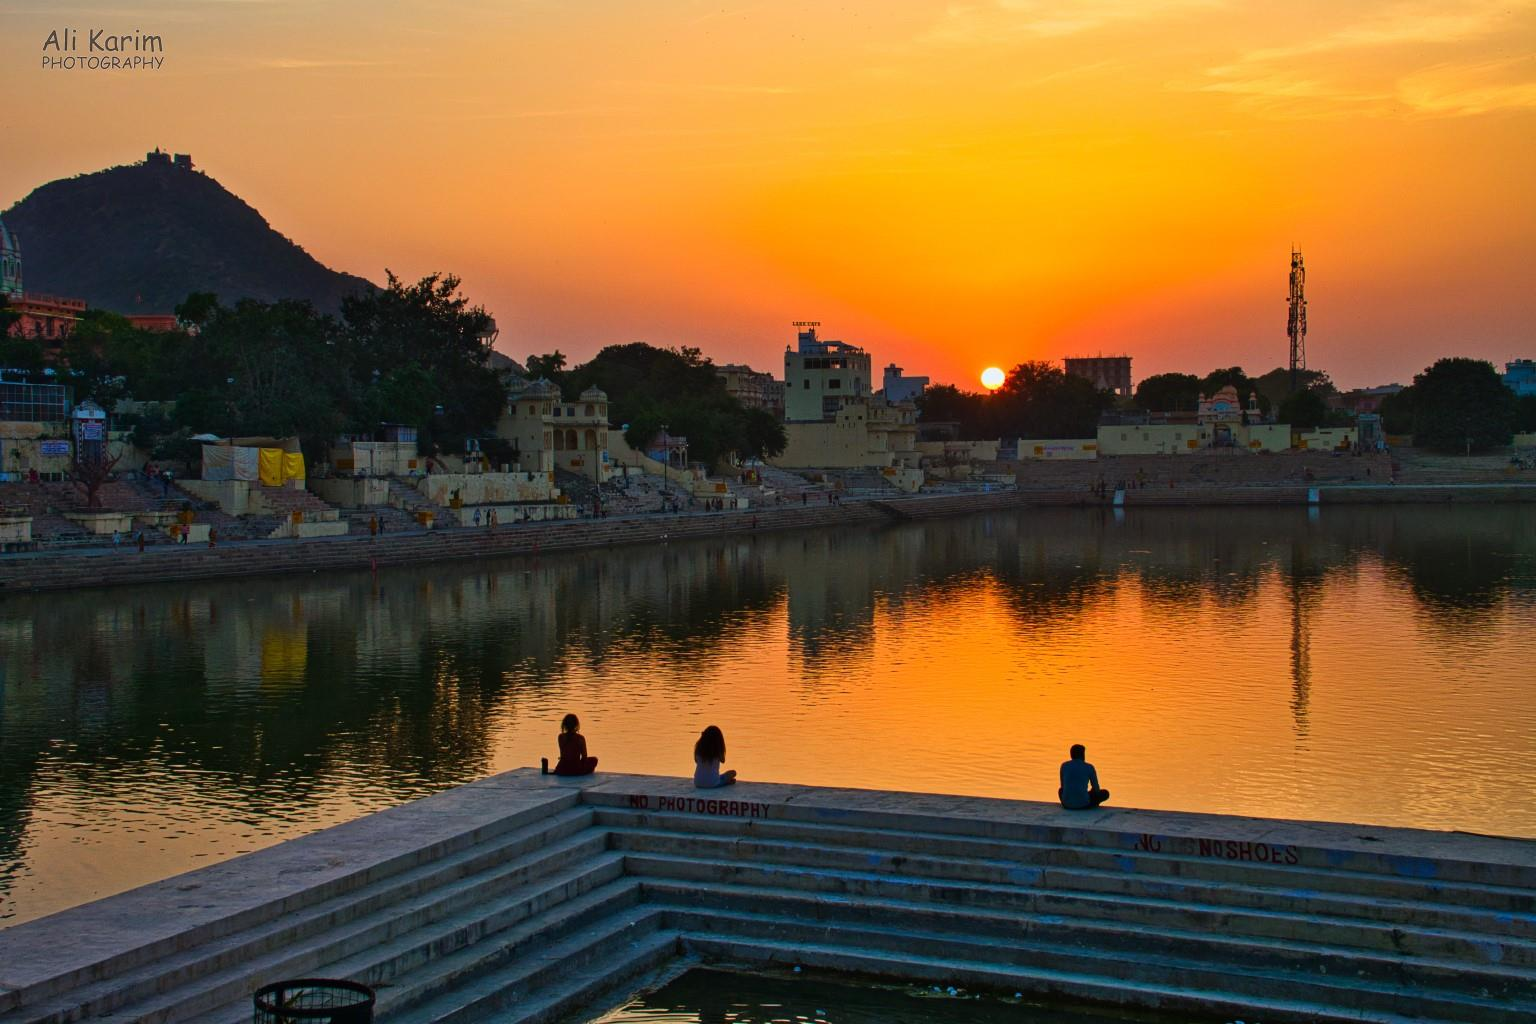 Pushkar, Rajasthan Sunset over Lake Pushkar. Note the Savitri temple on the hilltop. Goddess Savitri was the wife of Lord Brahma